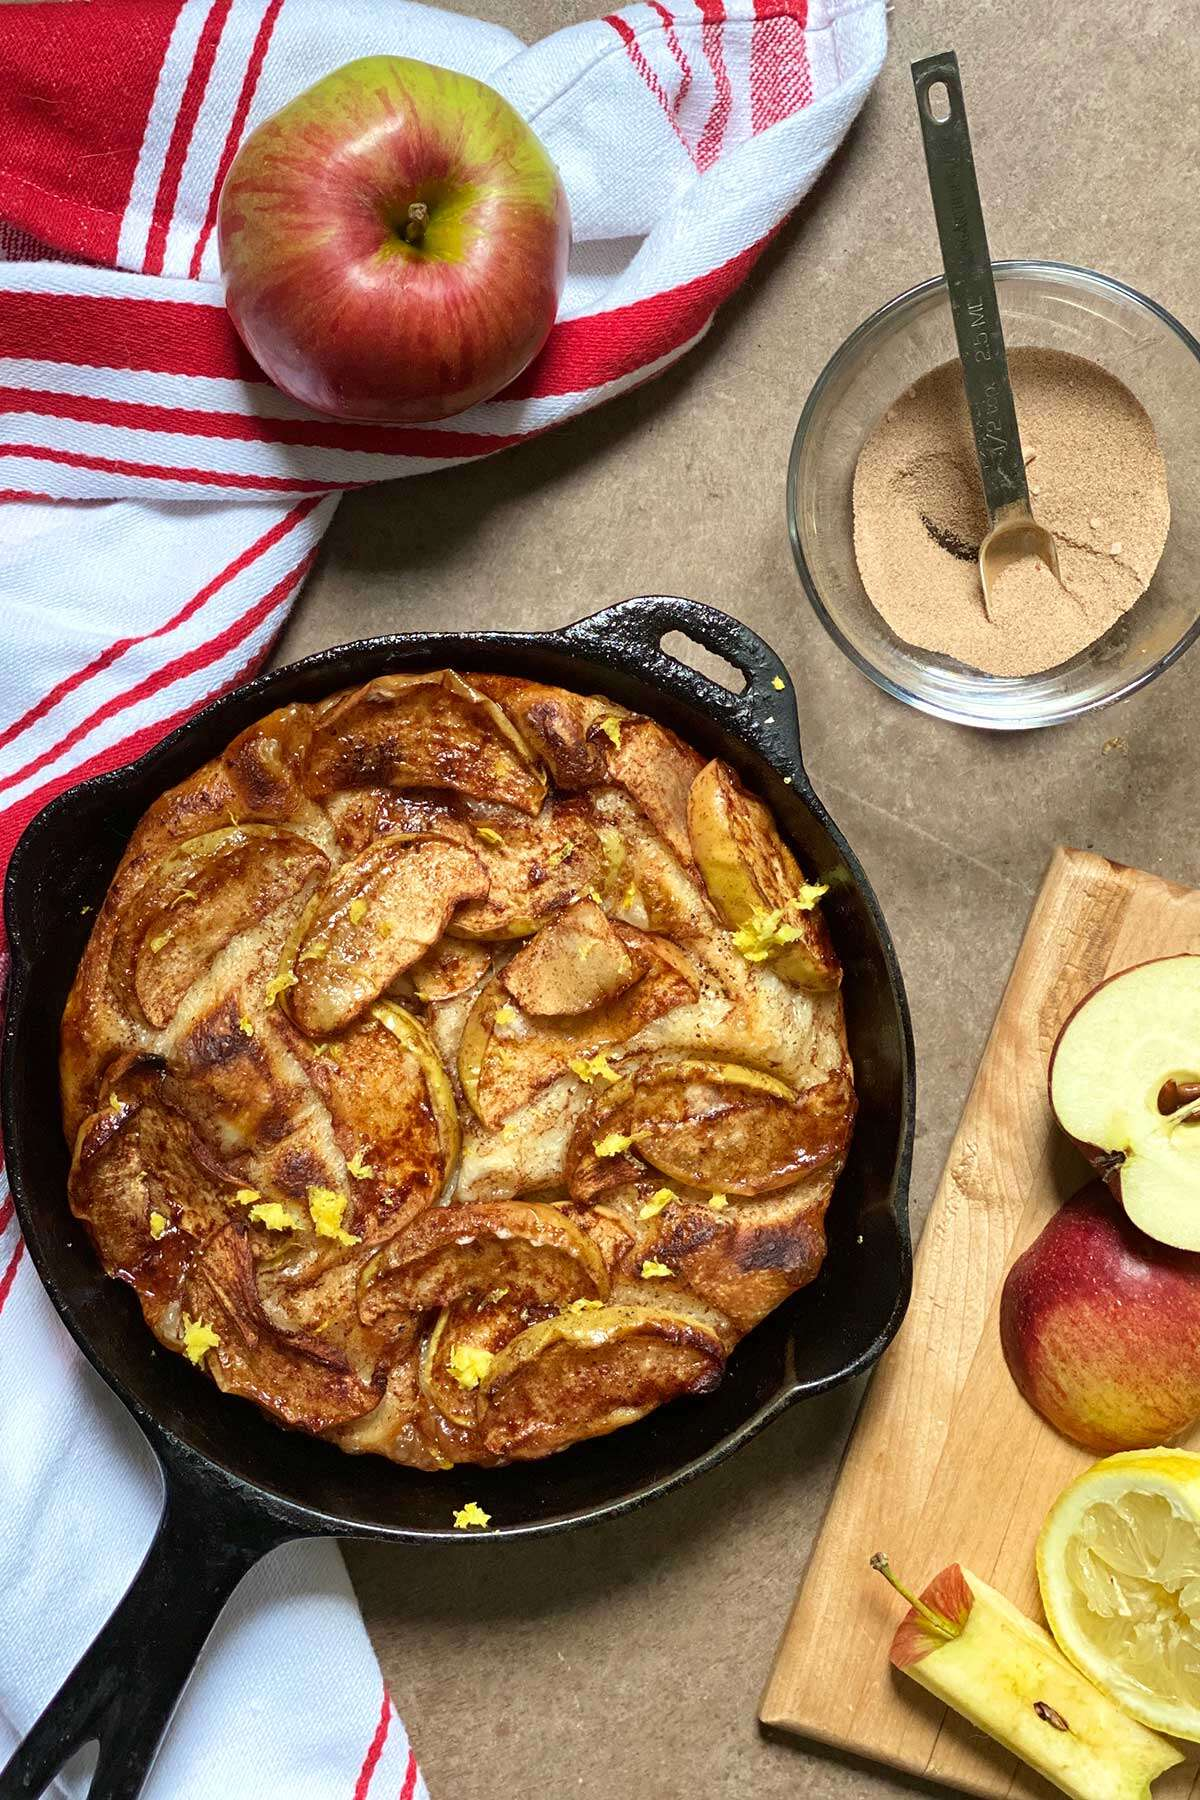 A cast iron pizza topped with sliced apples, cinnamon-sugar, and brown butter